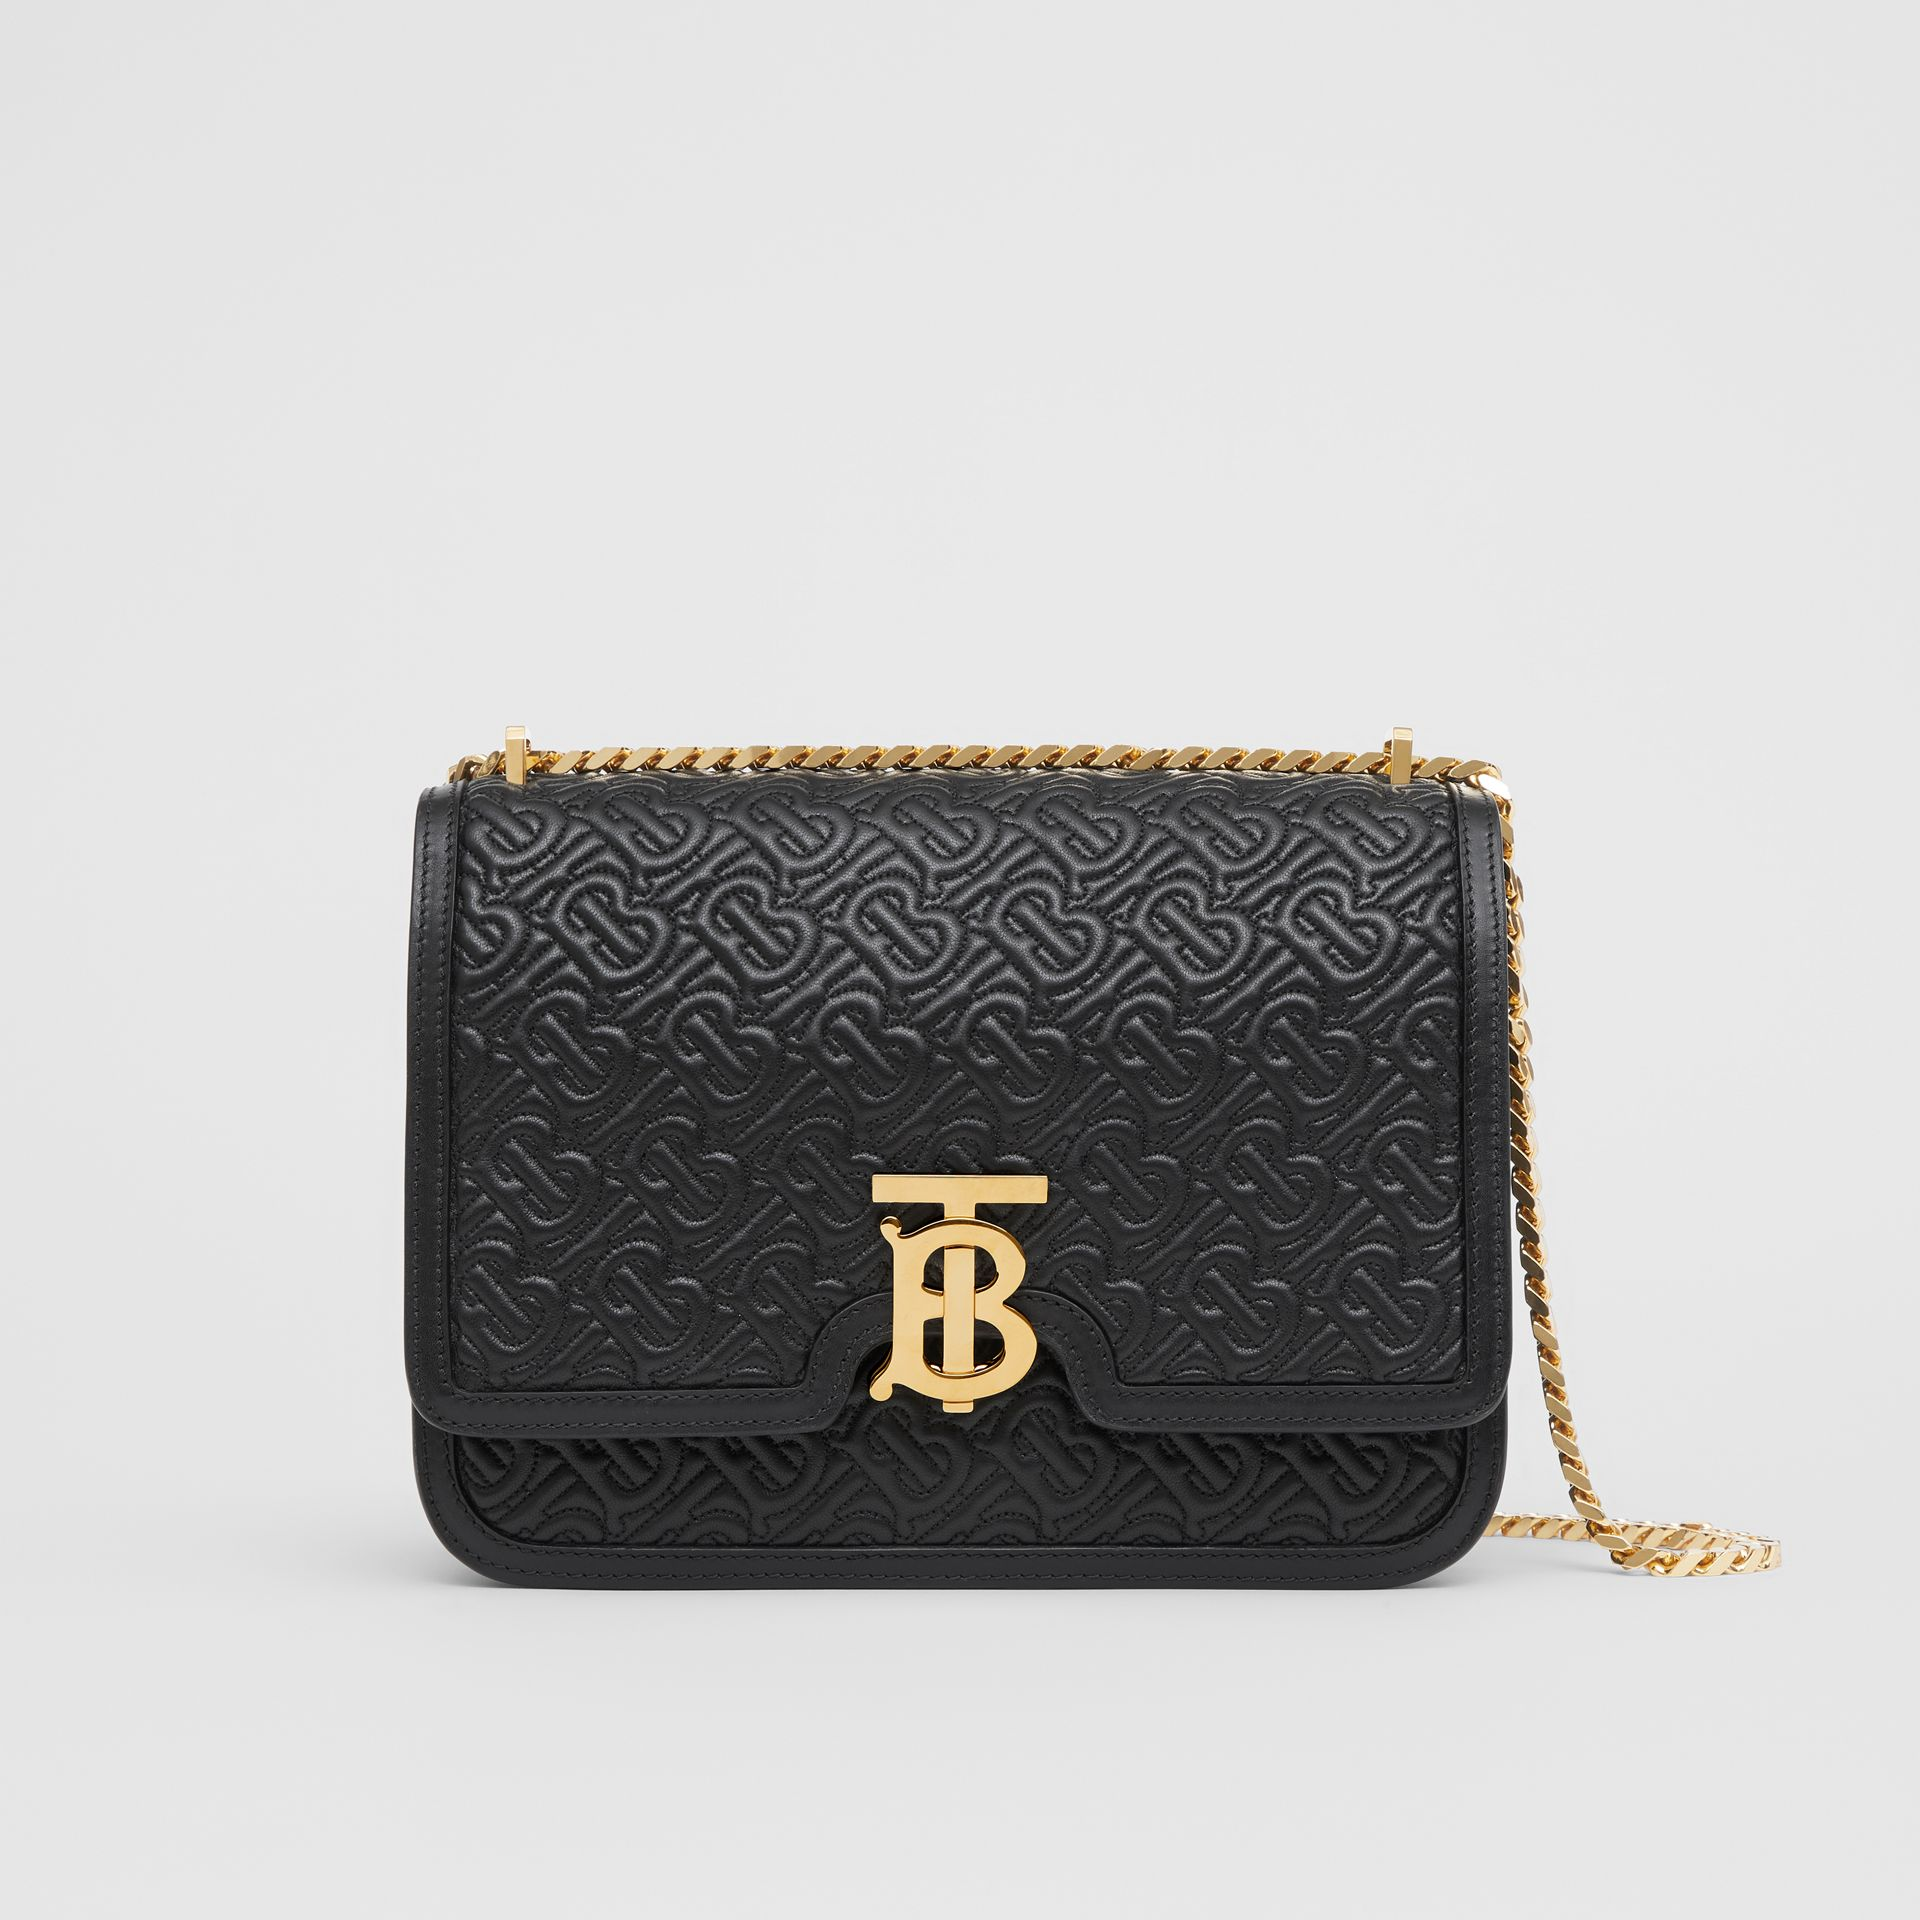 Medium Quilted Monogram Lambskin TB Bag in Black - Women | Burberry Canada - gallery image 0